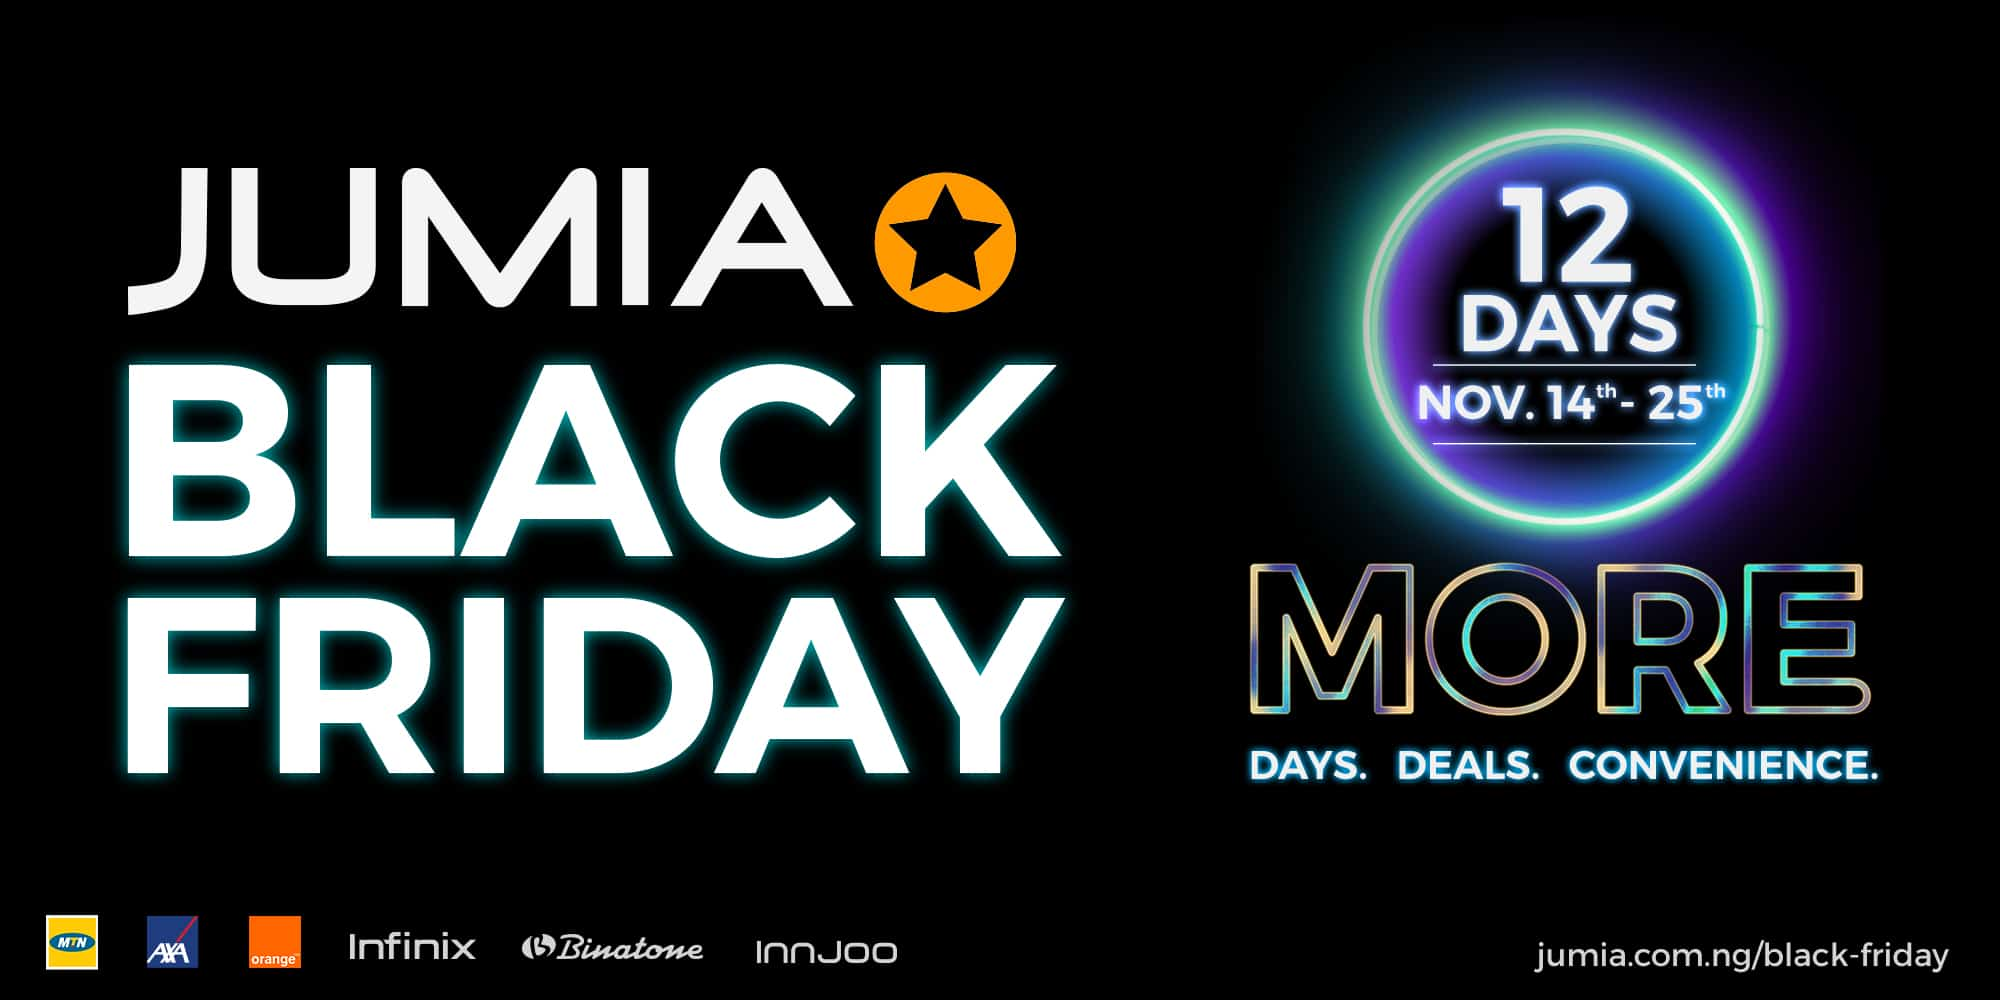 Www Black Friday Jumia Launches A 12 Day Black Friday Campaign